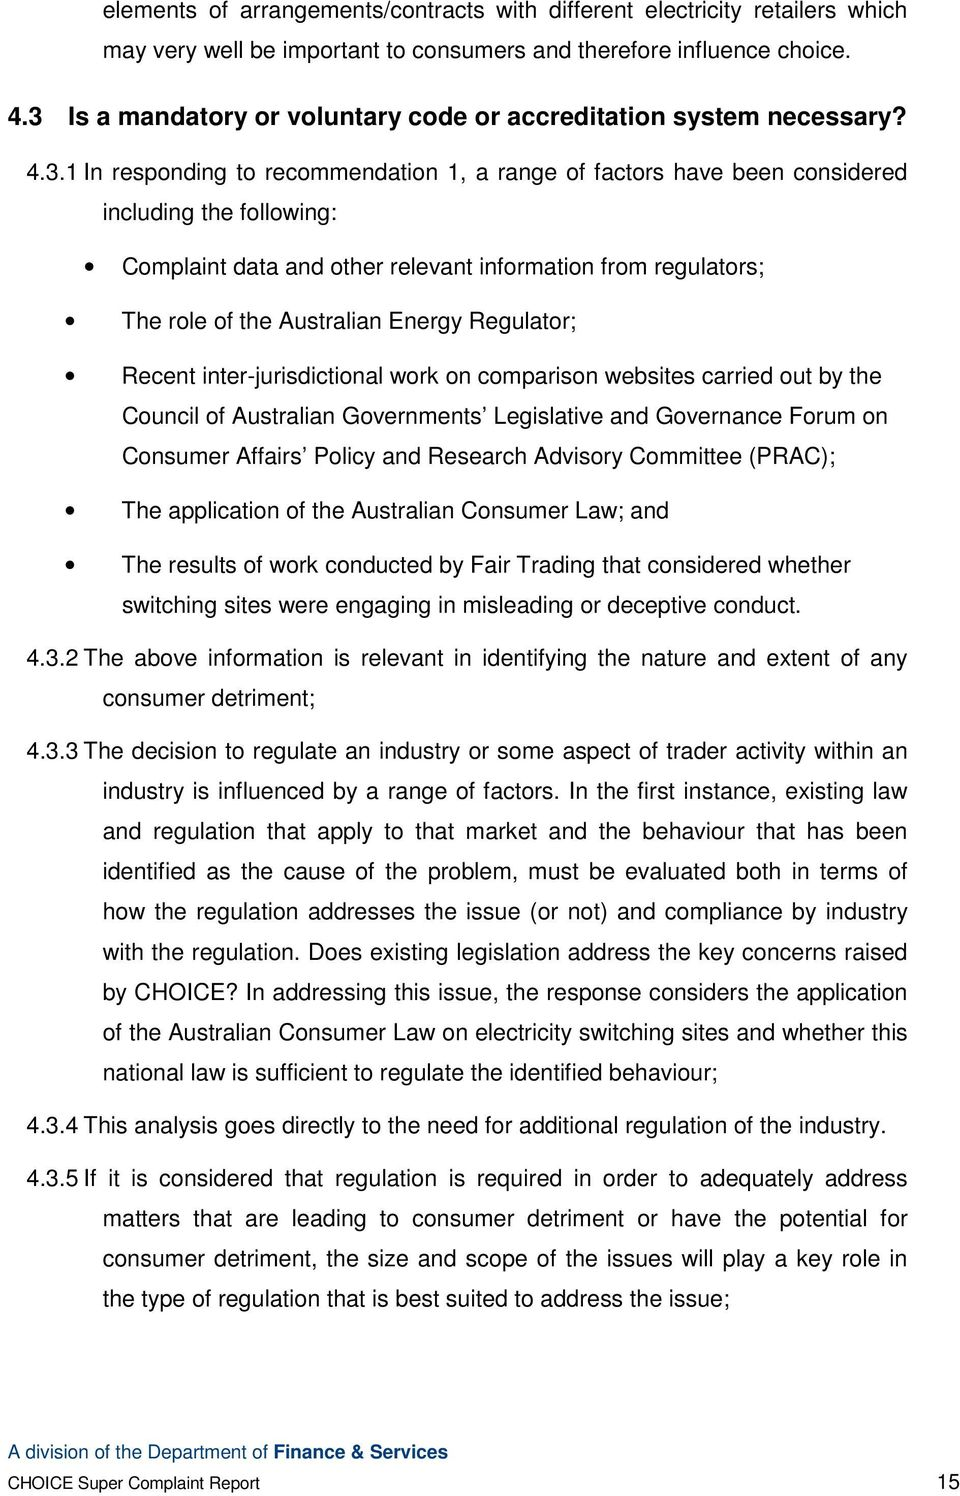 other relevant information from regulators; The role of the Australian Energy Regulator; Recent inter-jurisdictional work on comparison websites carried out by the Council of Australian Governments